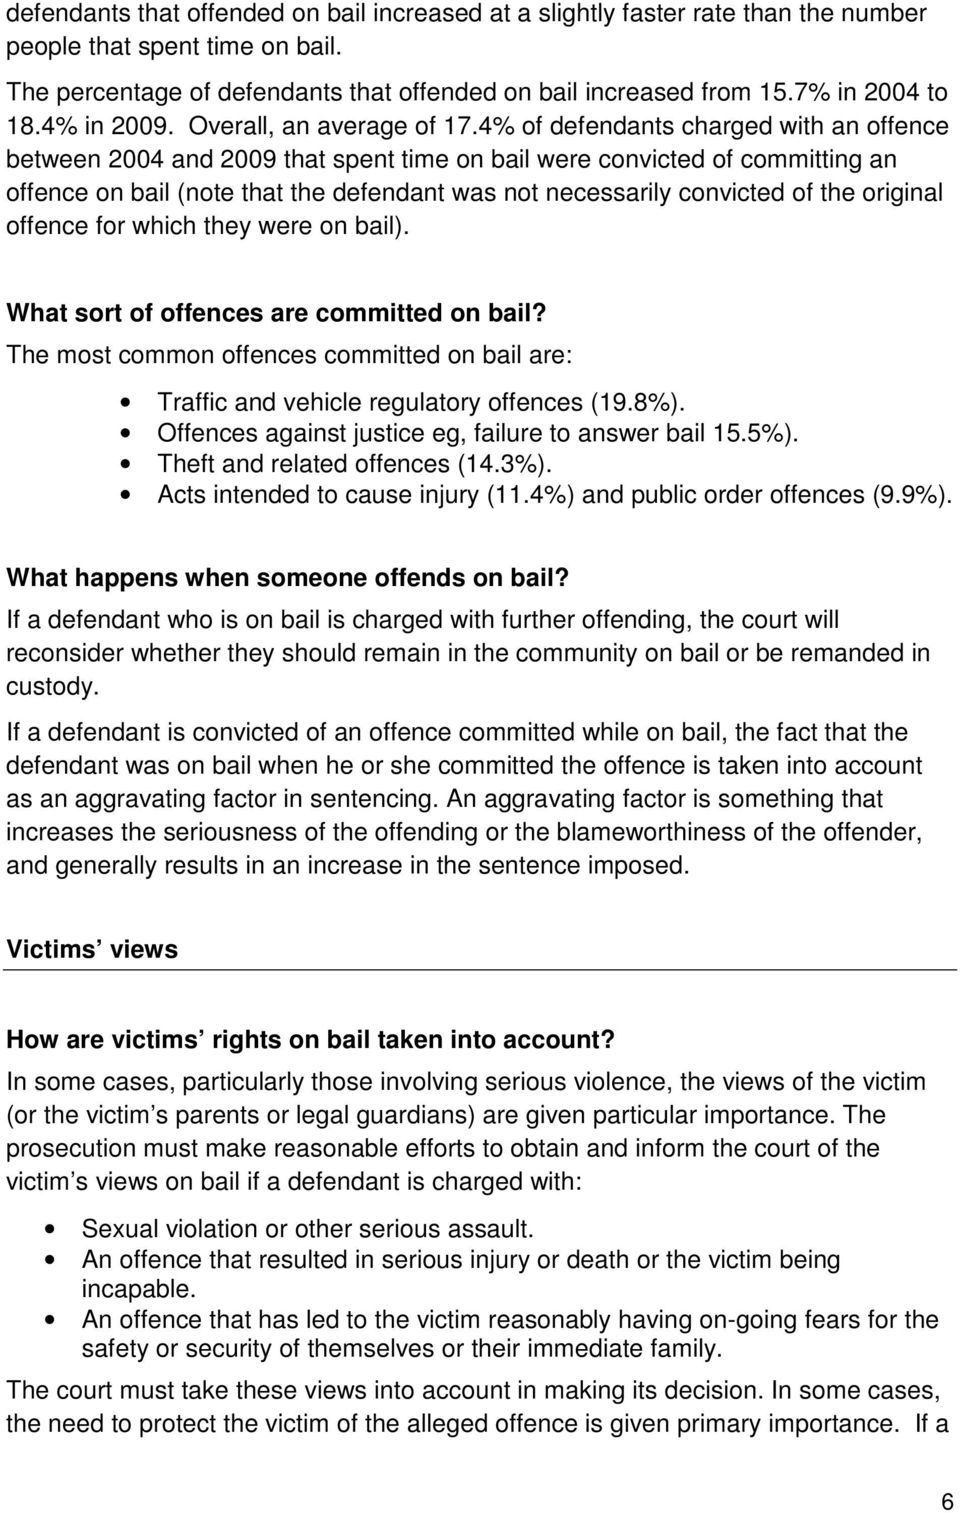 4% of defendants charged with an offence between 2004 and 2009 that spent time on bail were convicted of committing an offence on bail (note that the defendant was not necessarily convicted of the